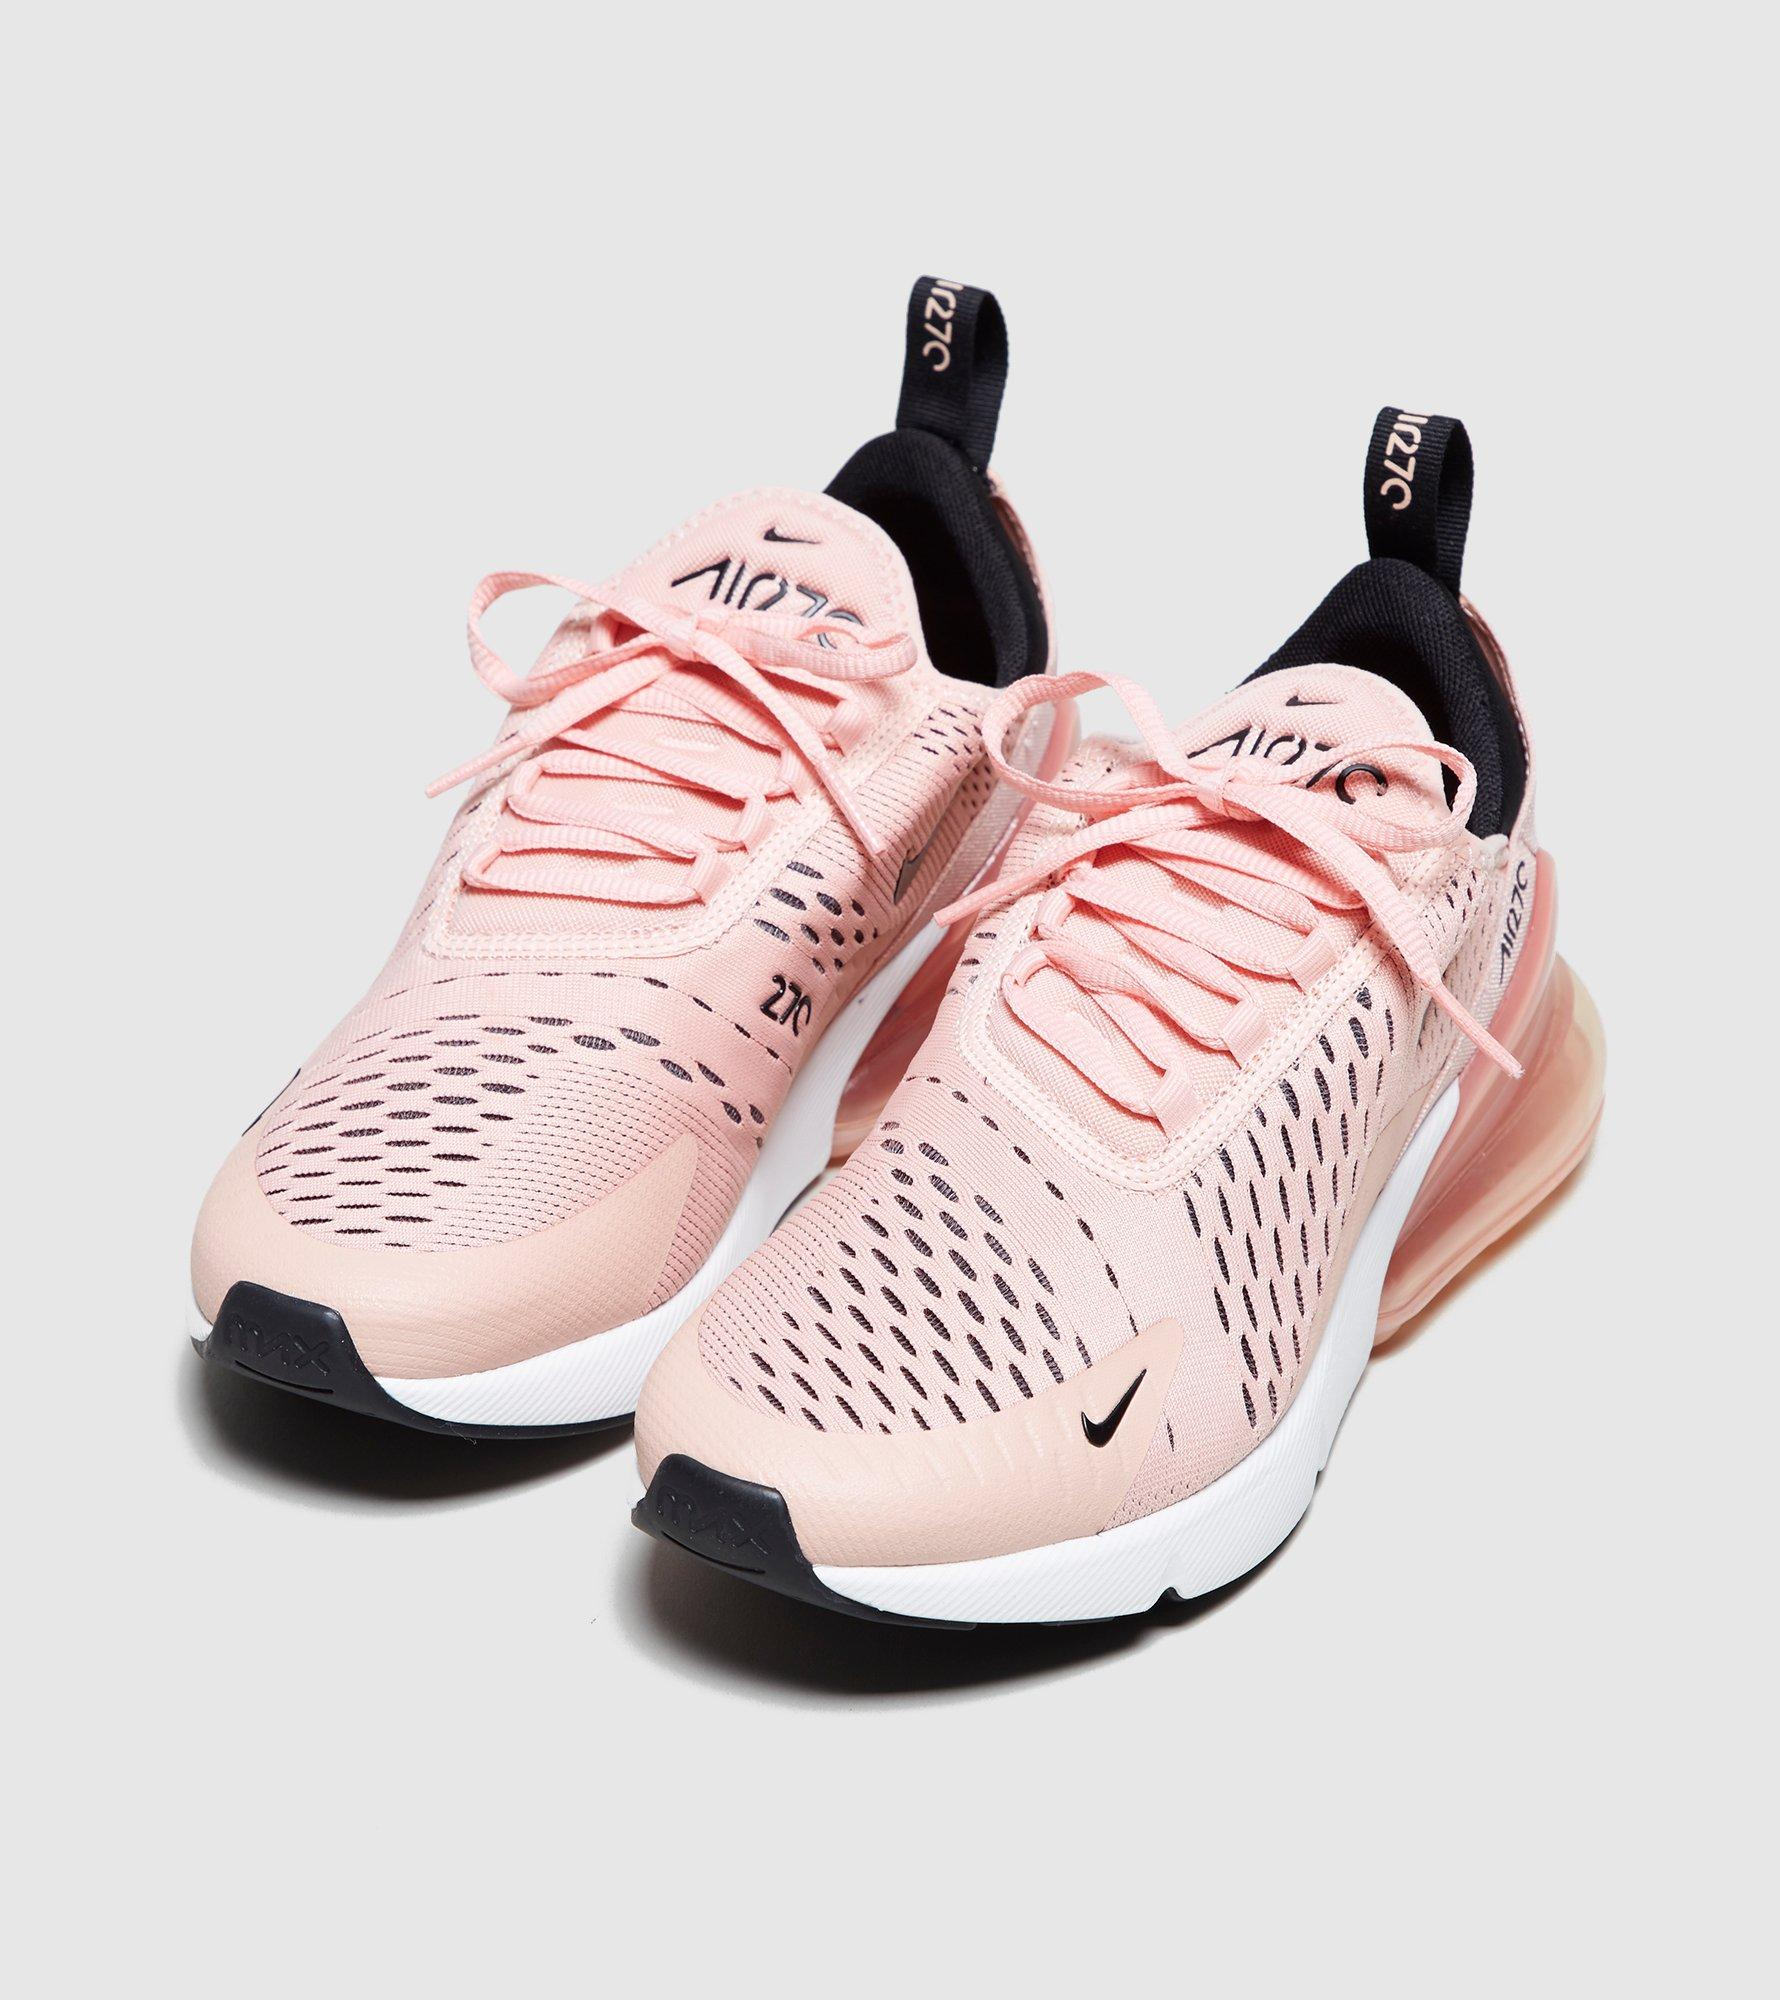 sports shoes 10fed 8e893 ... uk tumblr de sortie vente explorer nike air max costume 270 femmes rose  achat en ligne ...